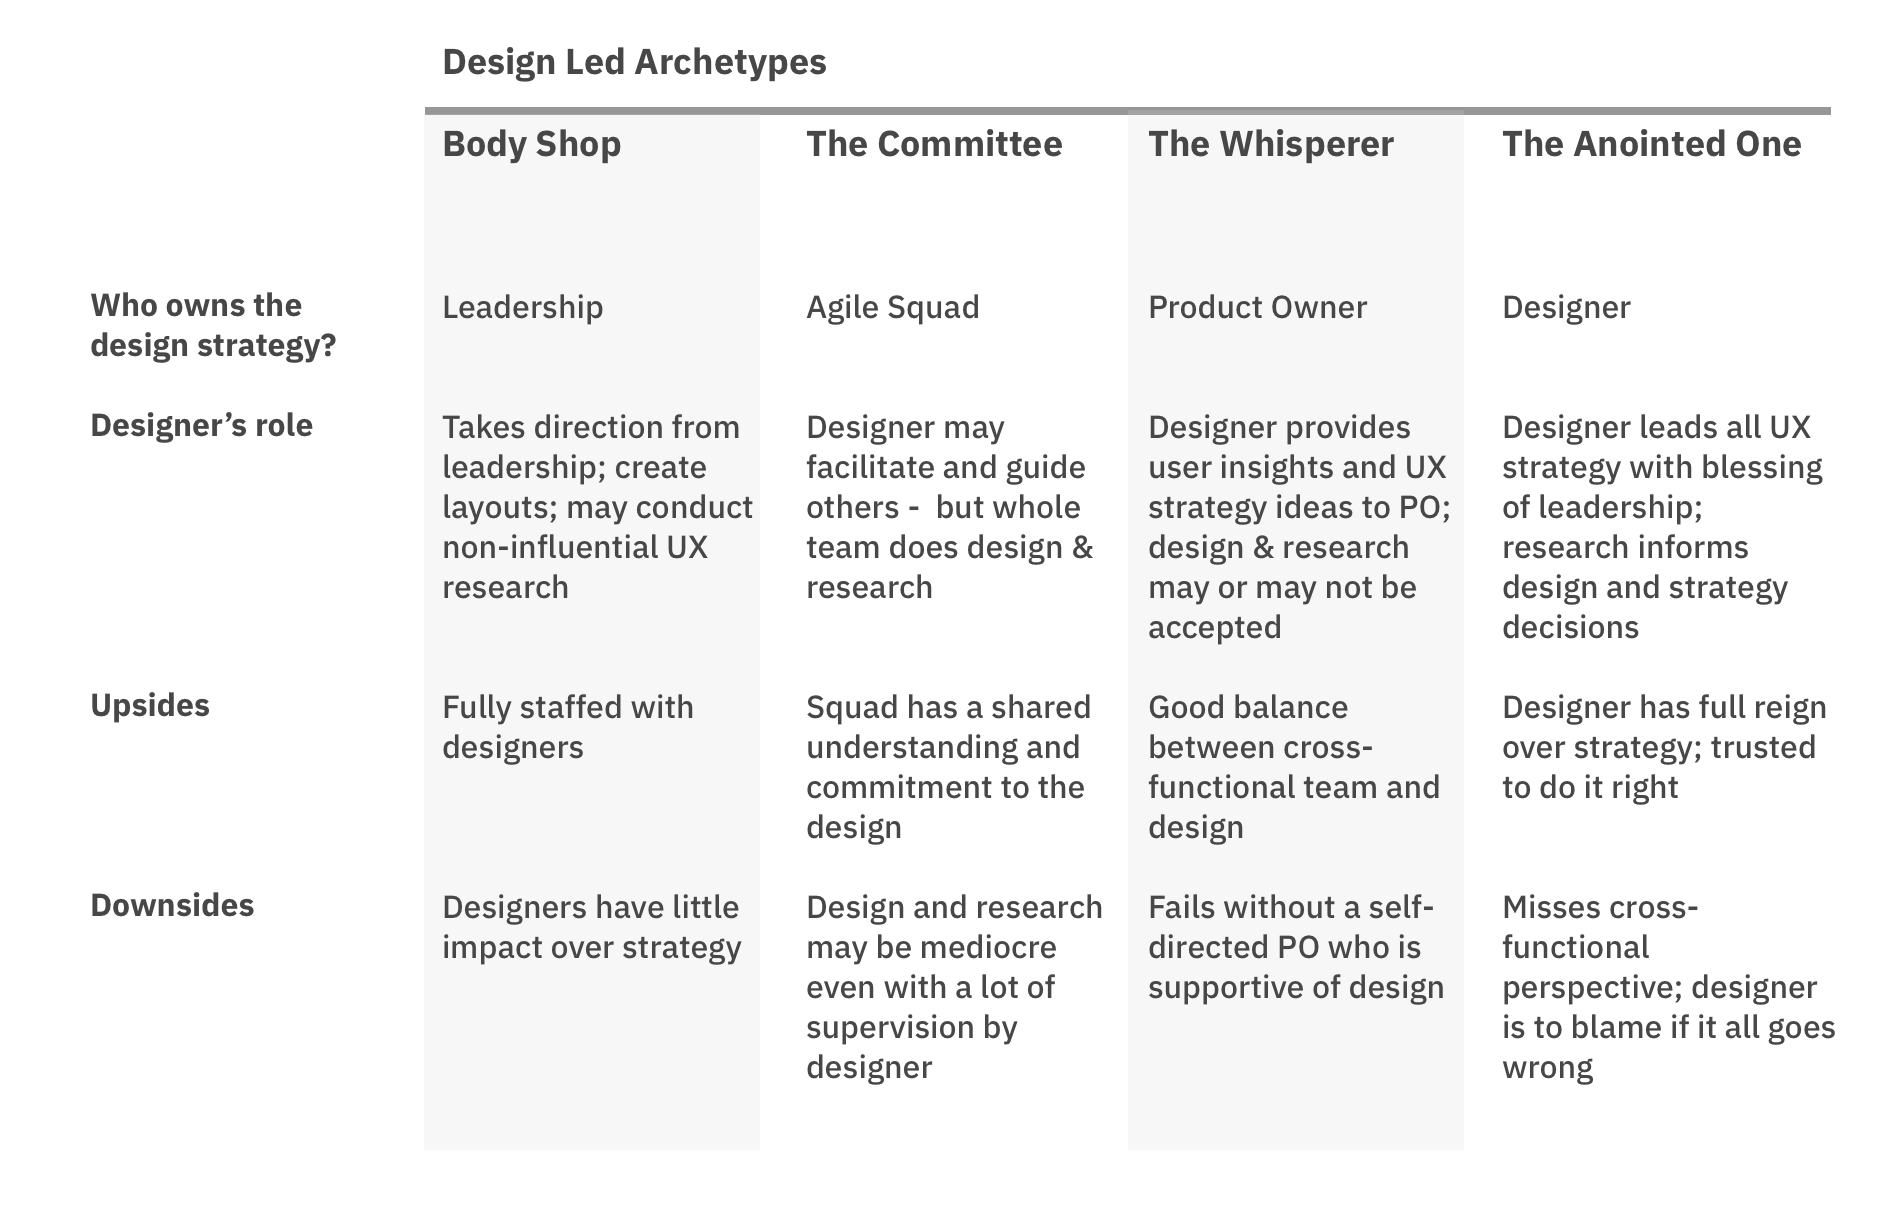 Table summarizes the 4 archetypes described in this article